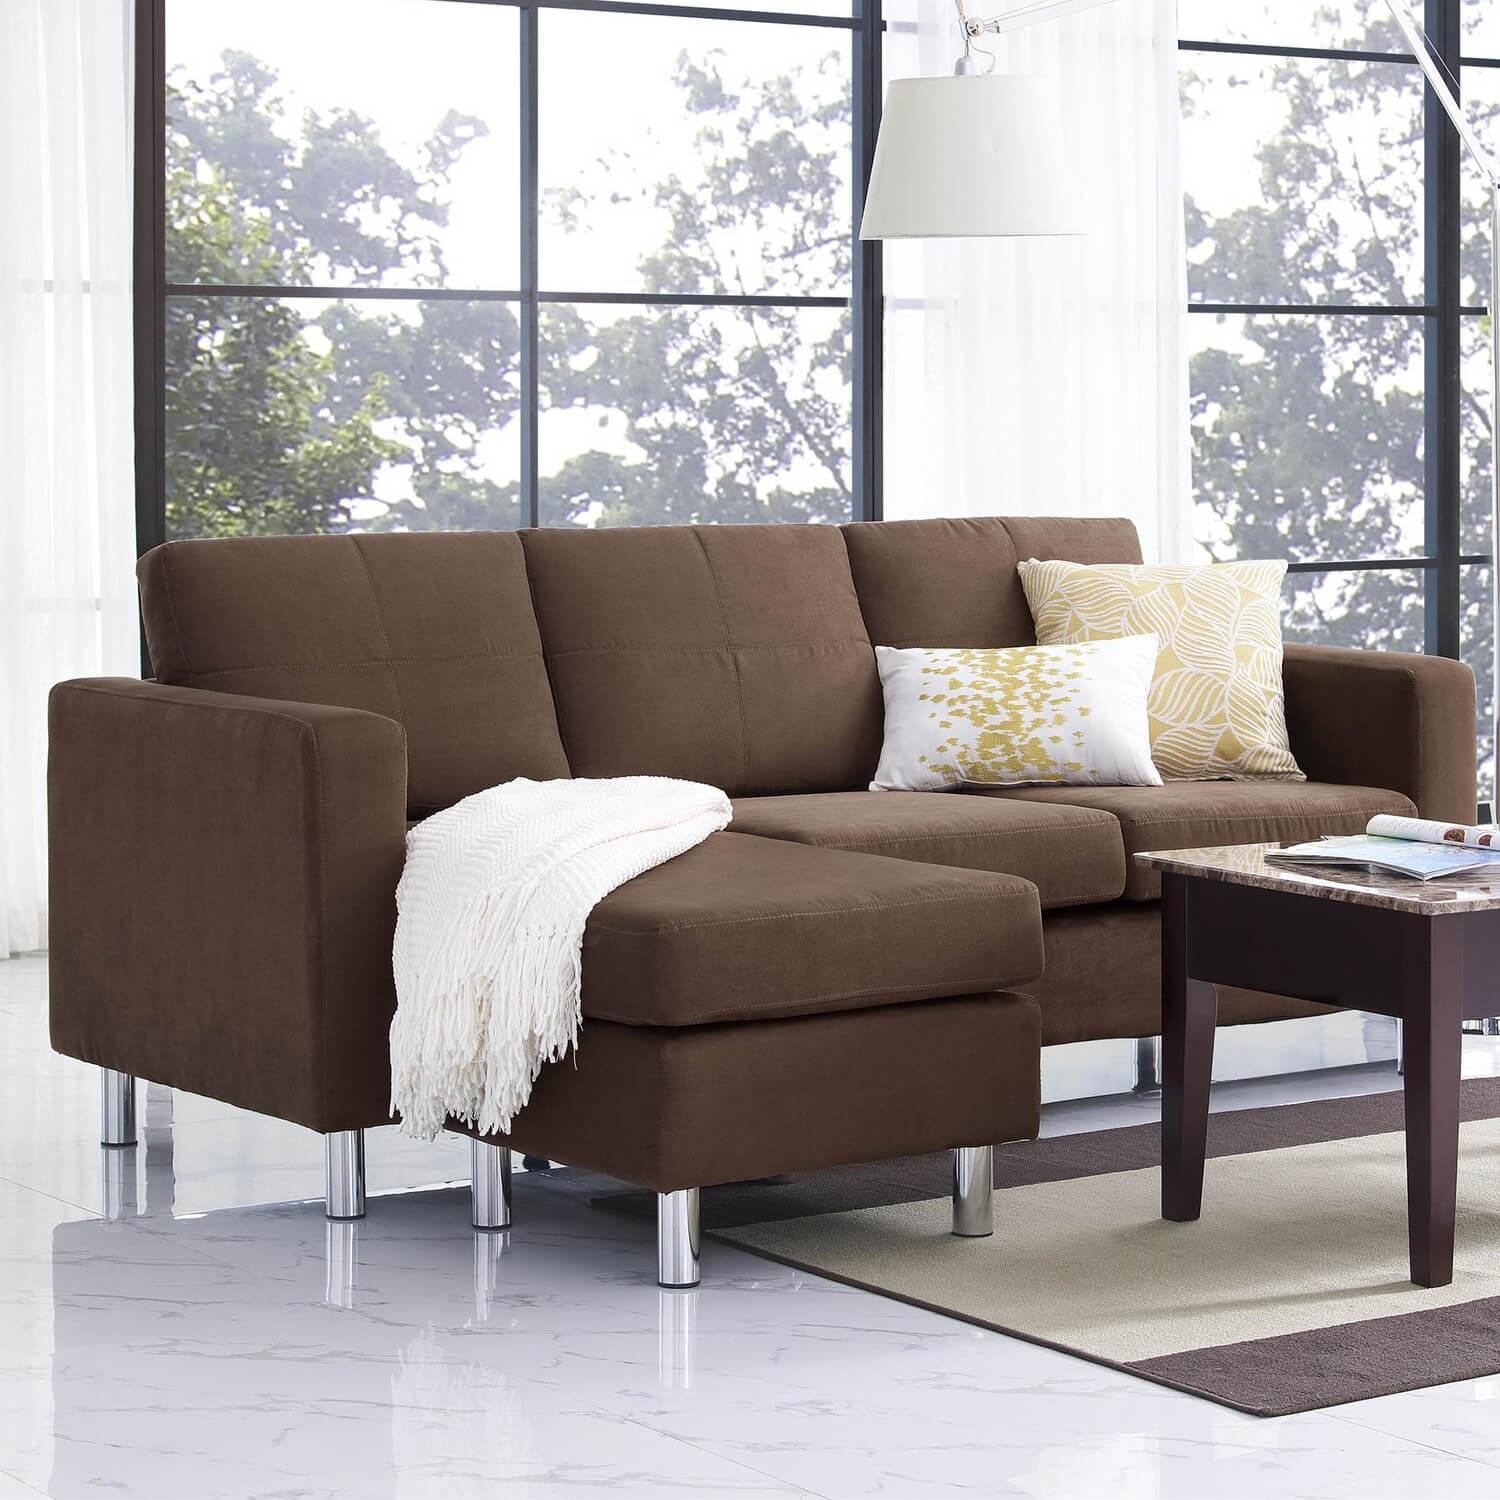 Furniture & Sofa: Best Sectional For Small Spaces | Small Space In Sectional Sofas In Small Spaces (View 8 of 20)